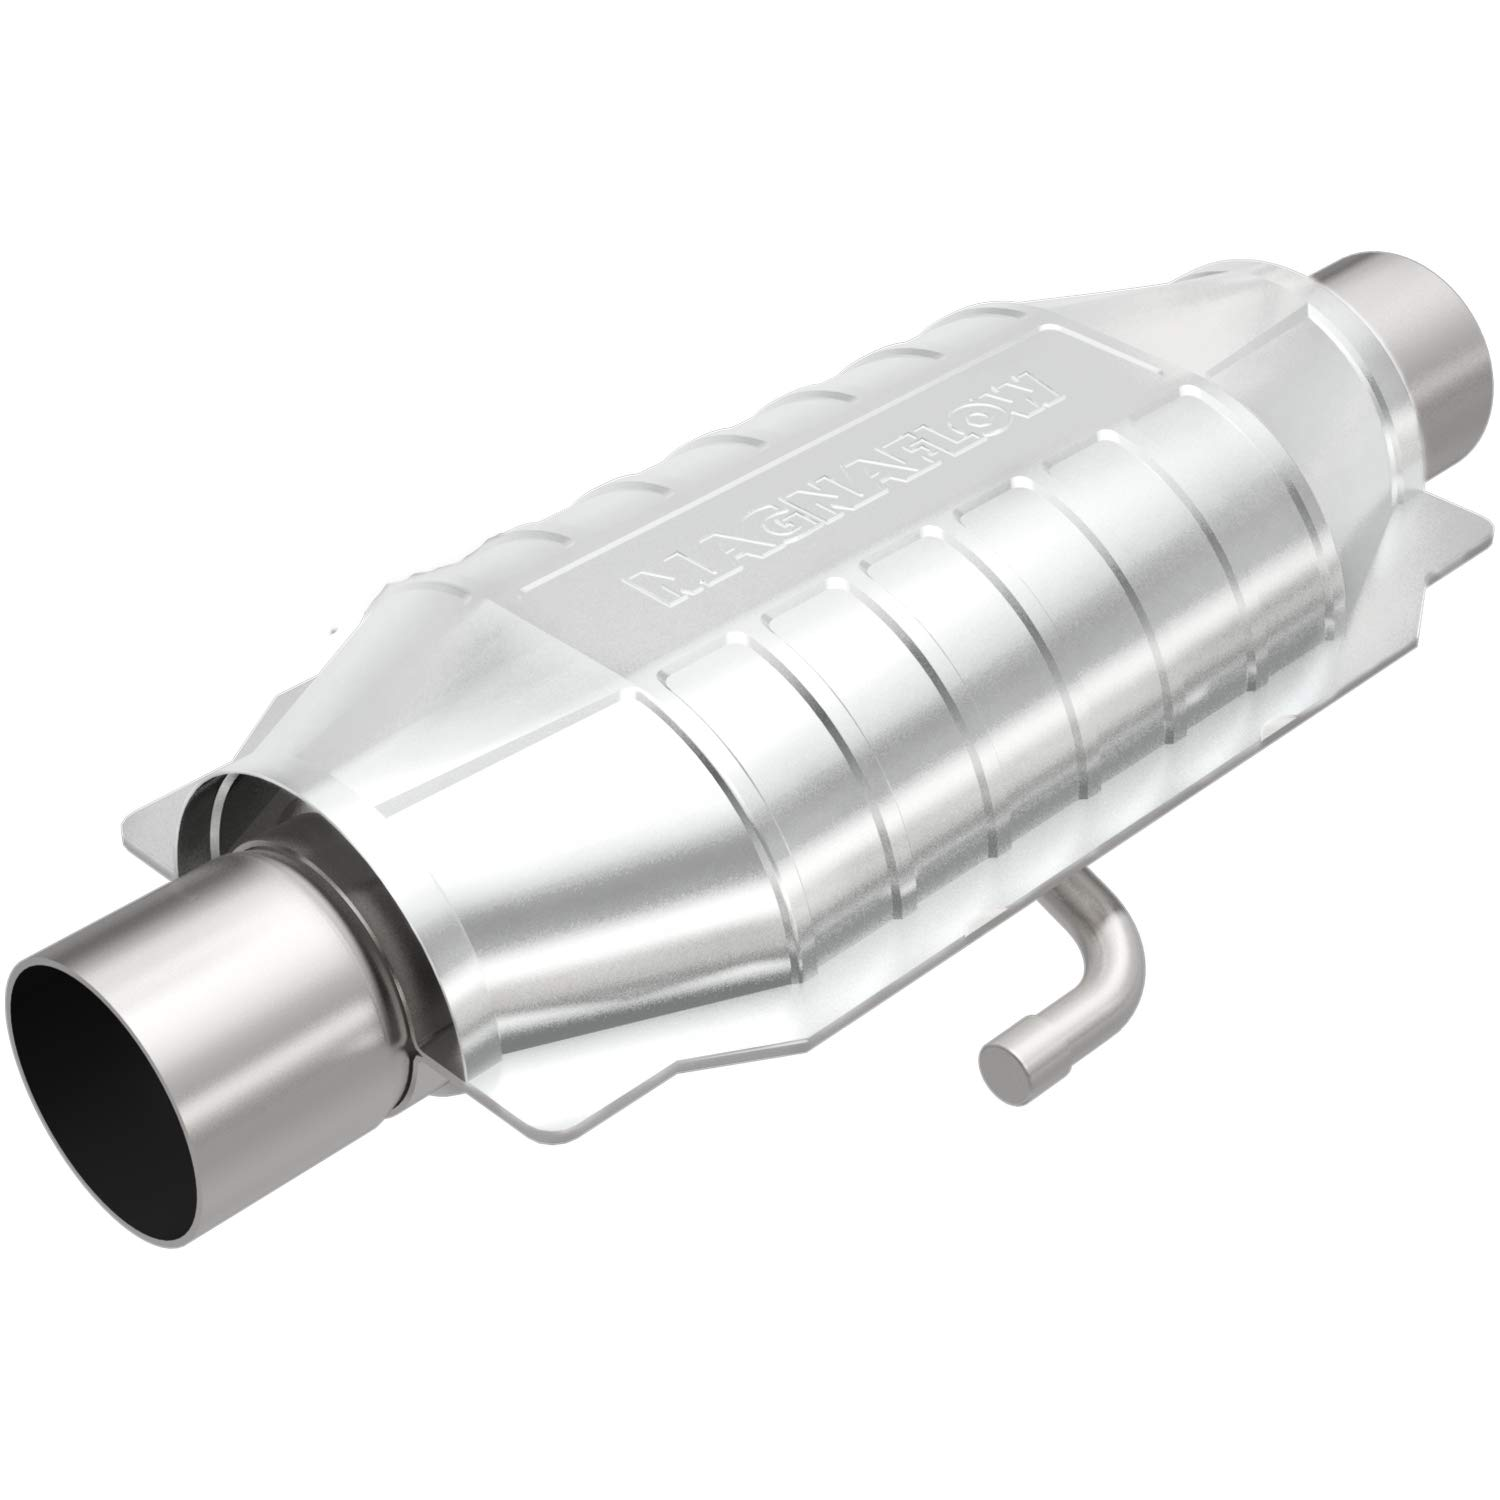 MagnaFlow 338016 Universal Catalytic Converter (CARB Compliant) MagnaFlow Exhaust Products